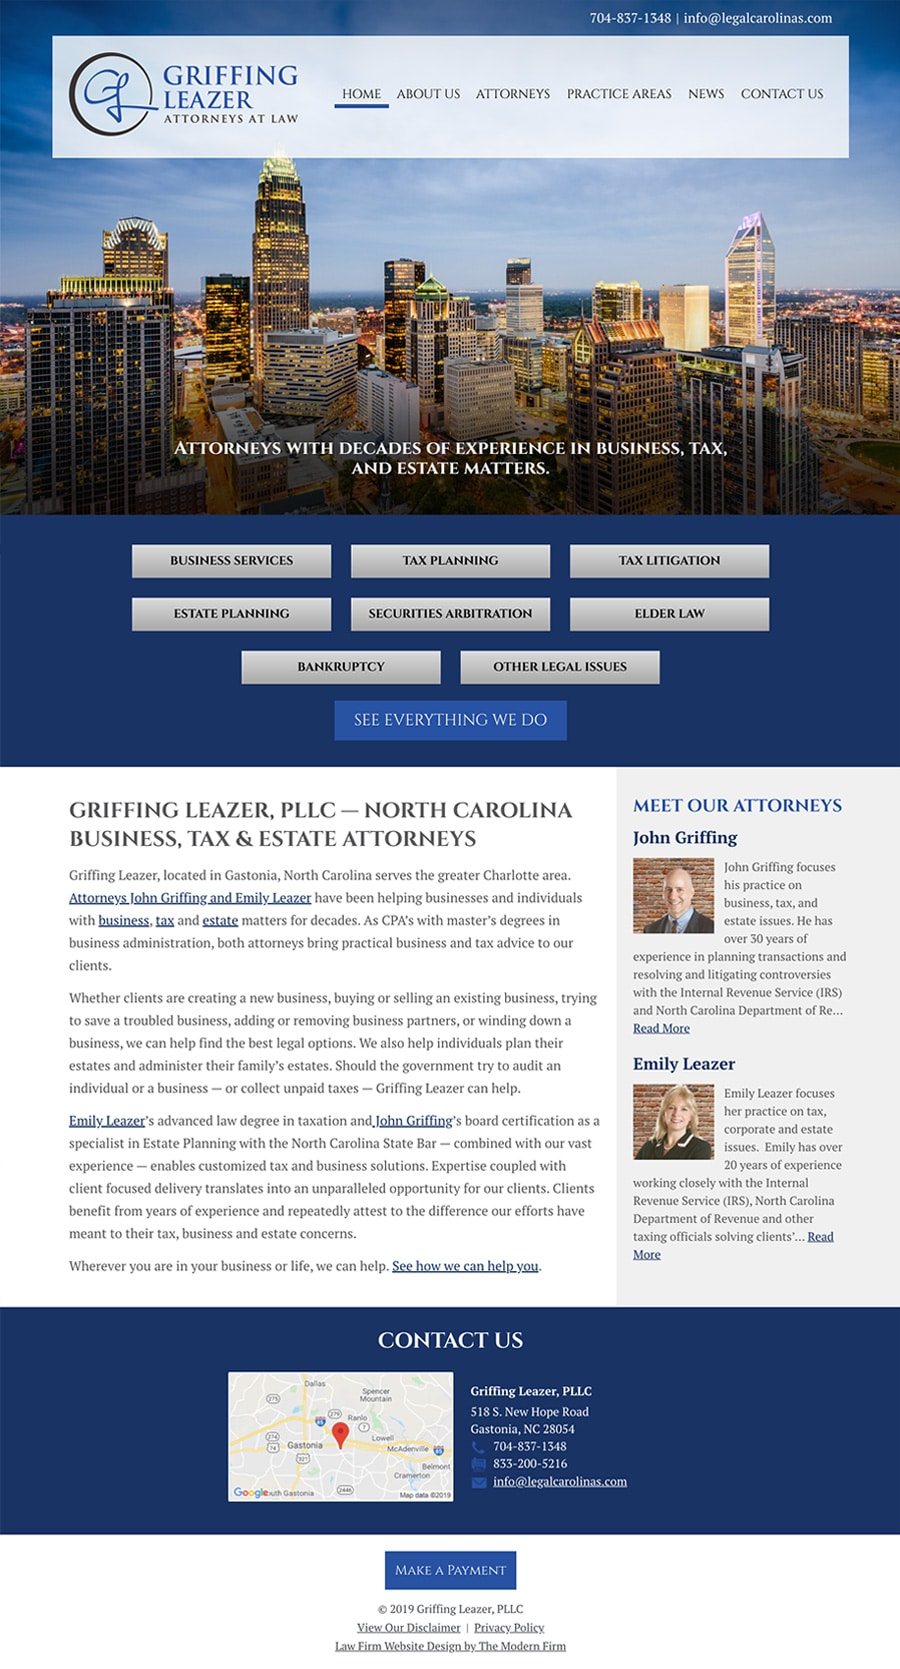 Law Firm Website Design for Griffing Leazer, PLLC